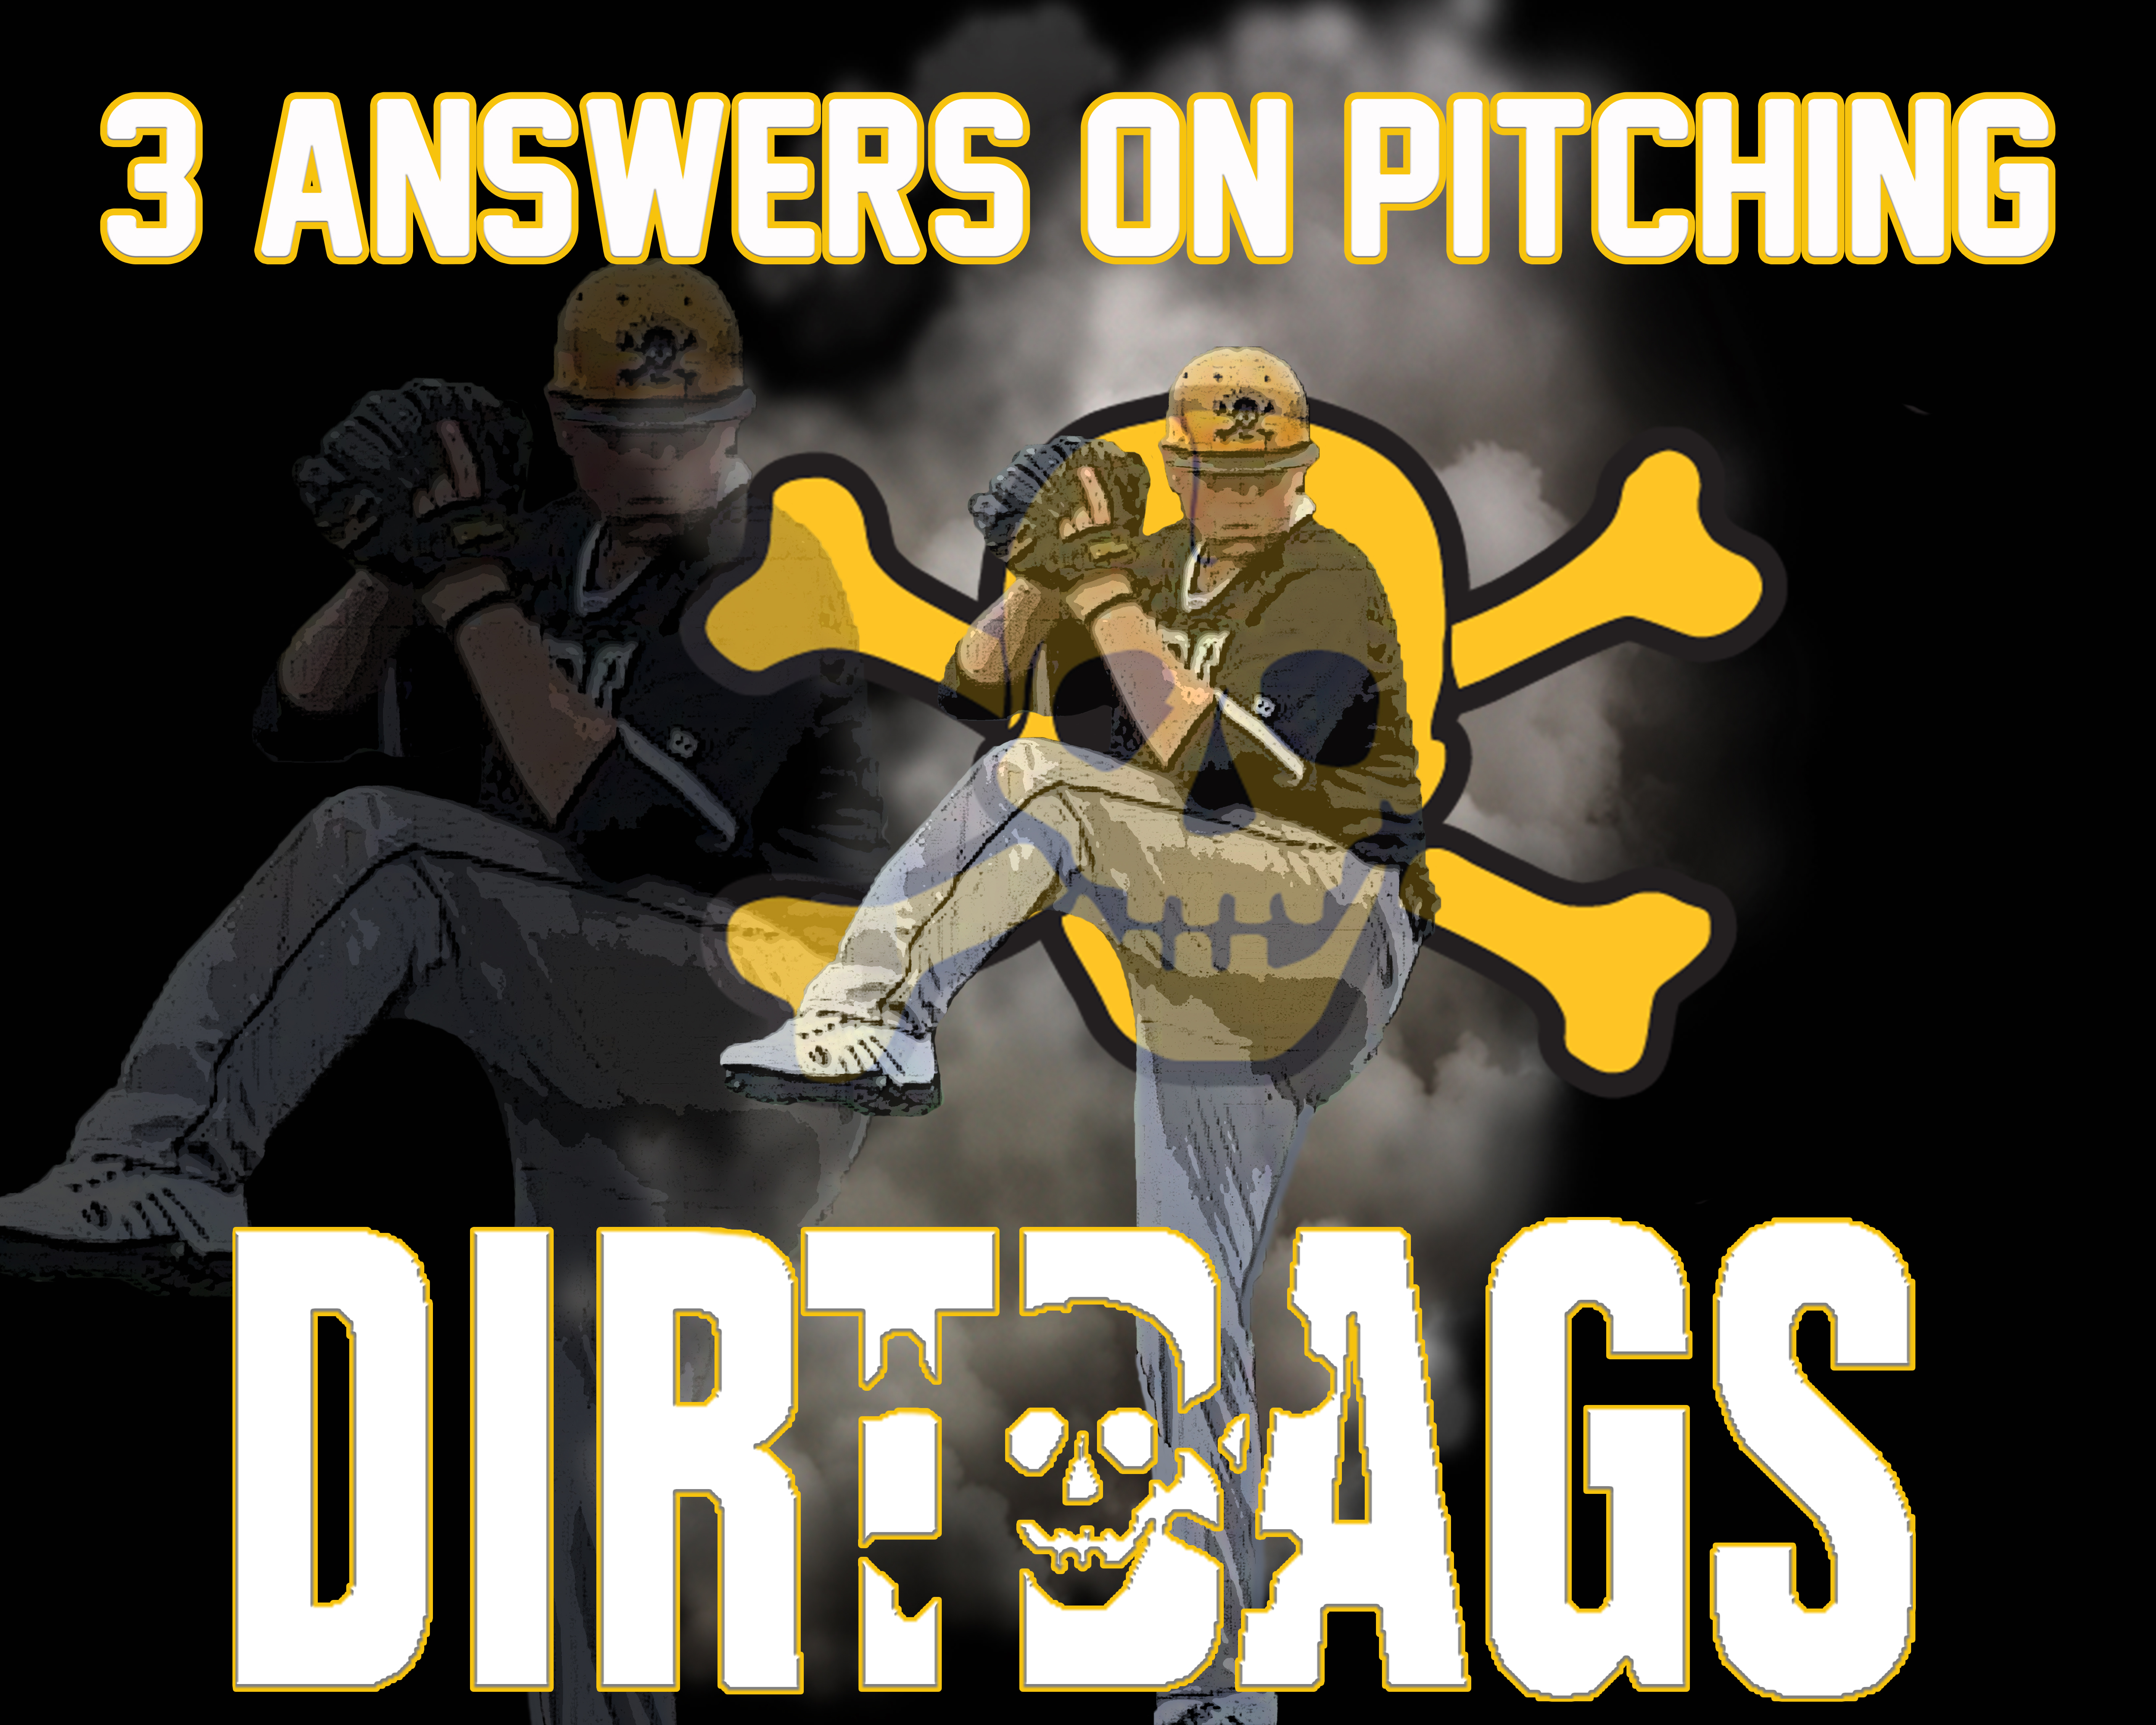 Instructional Friday: 3 Answers on Pitching